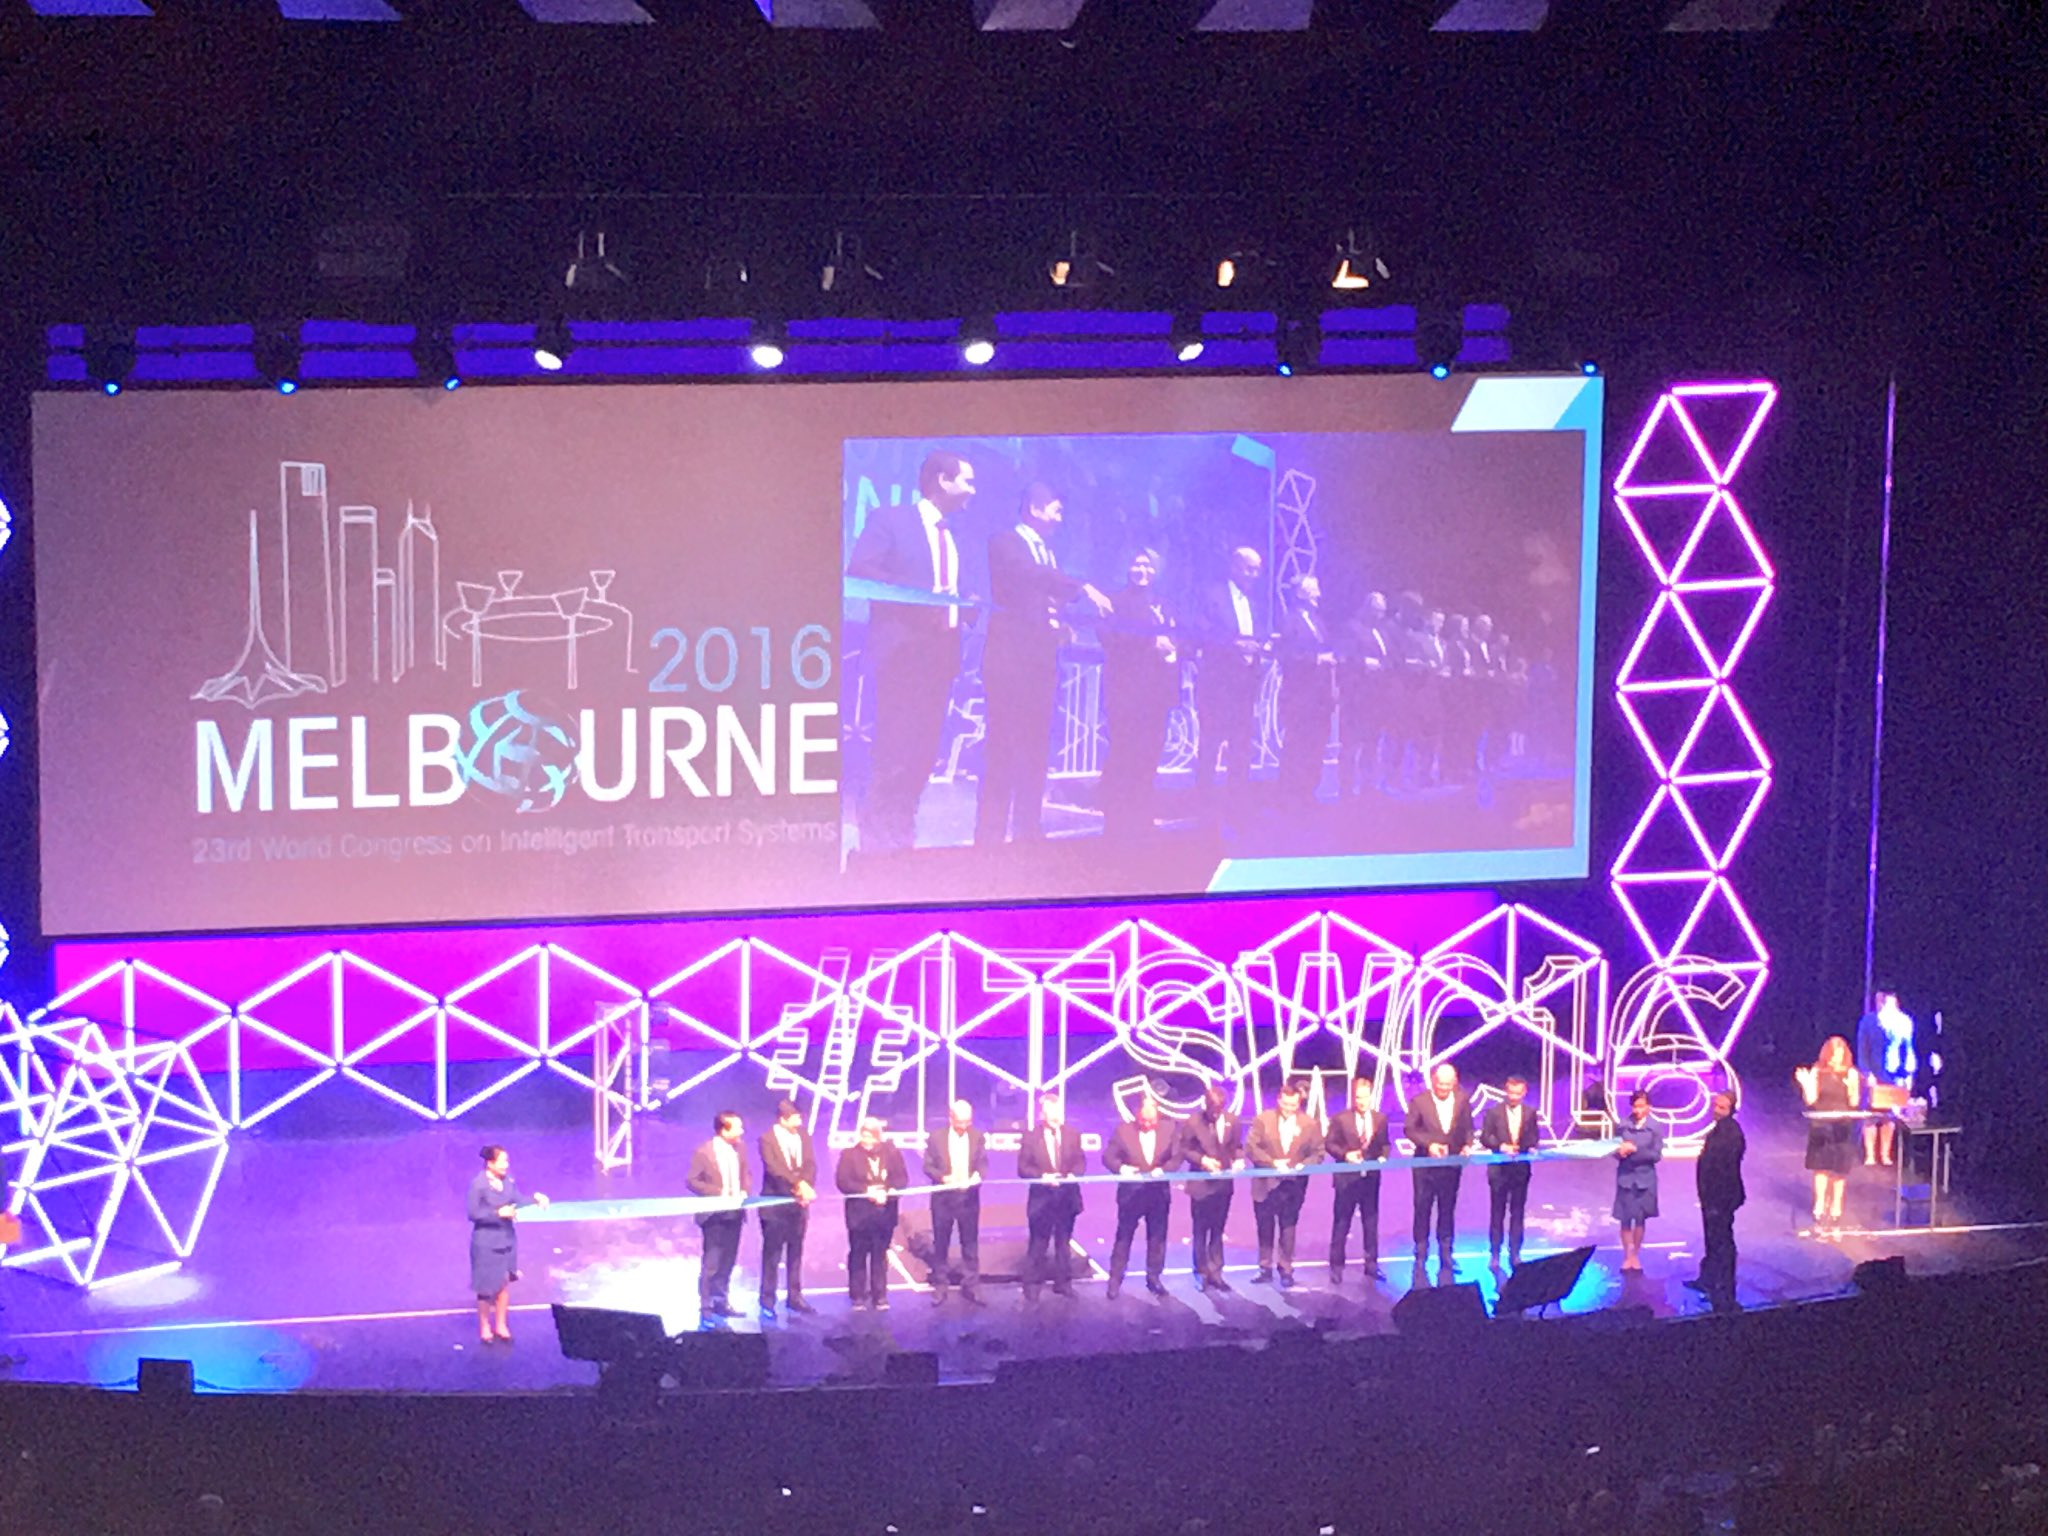 #ITSWC16 kicks off with the Opening Ceremony and Hall of Fame Awards